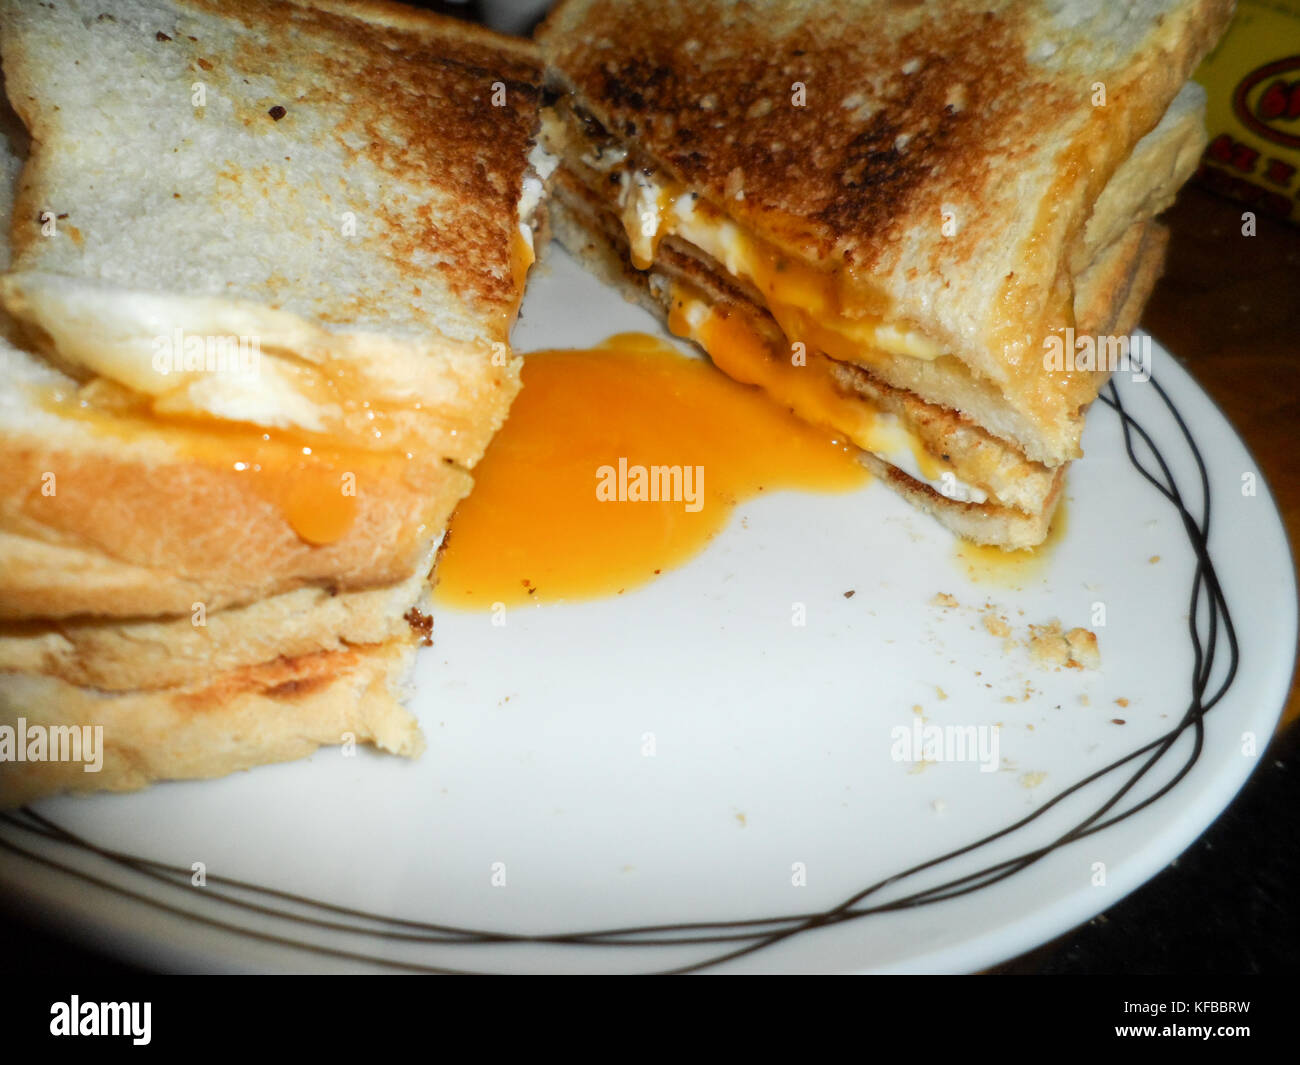 Toasted fried egg sandwich - Stock Image